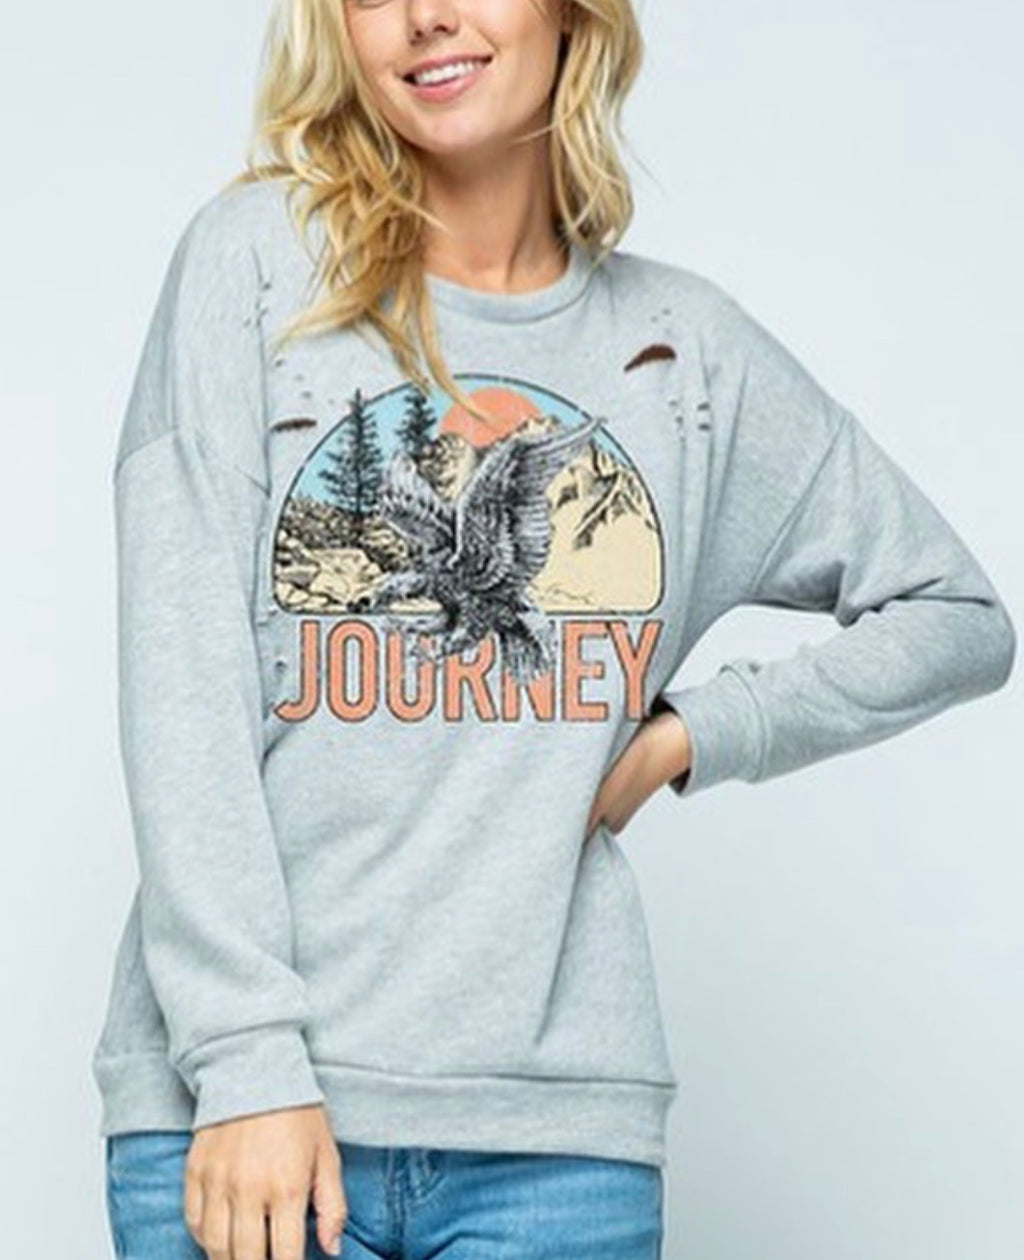 Women's Graphic Journey Distressed Sweater